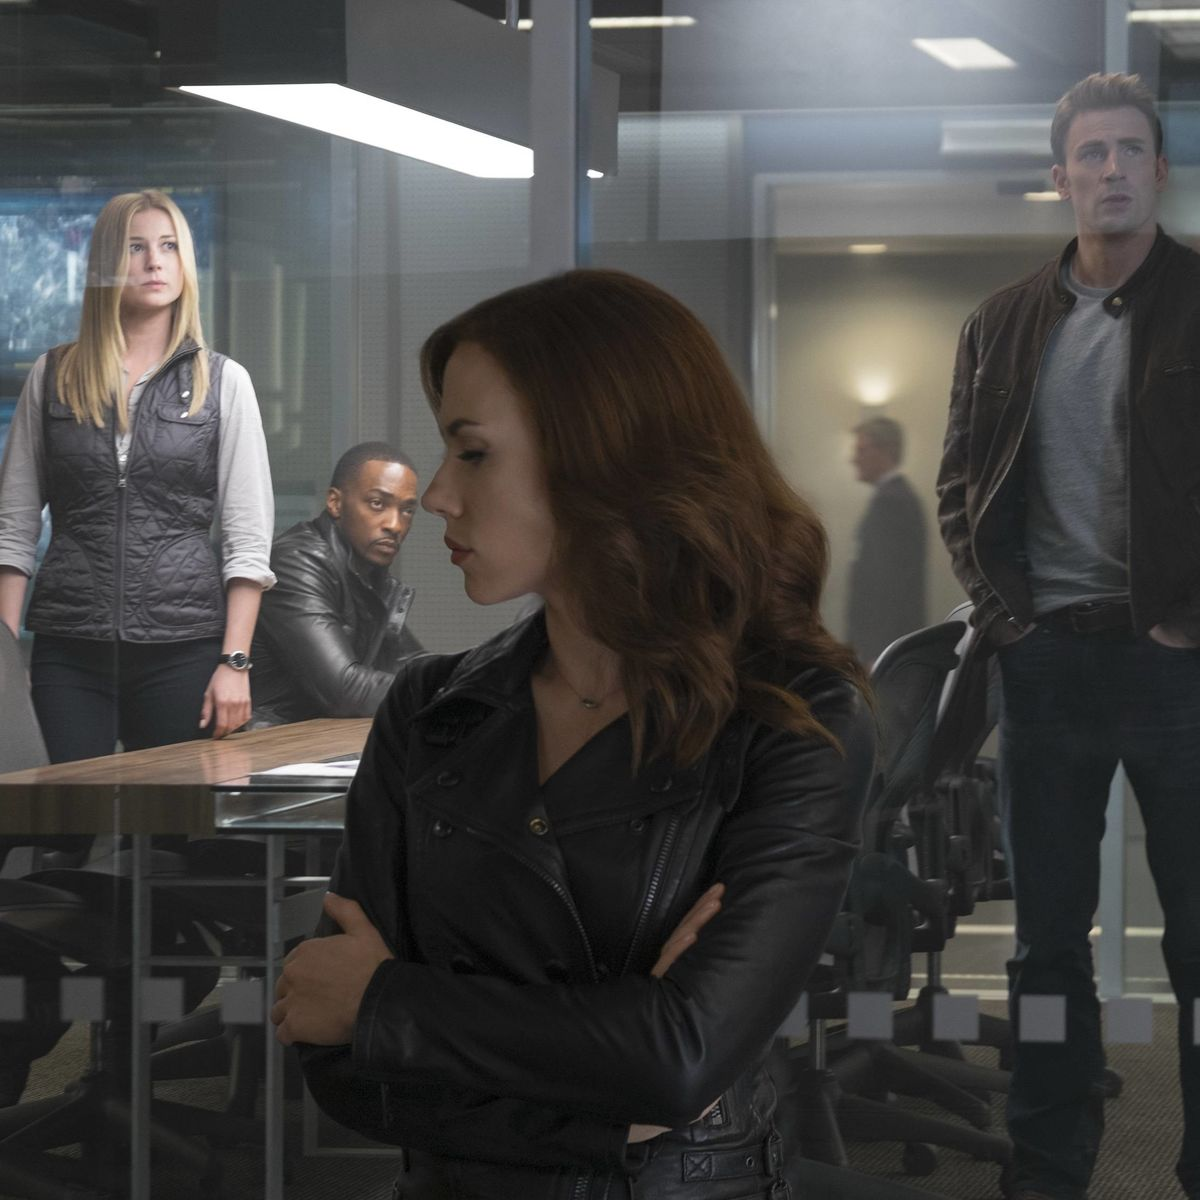 Captain_America_Civil-War-Cap-Black-Widow-Sharon-Falcon.jpg